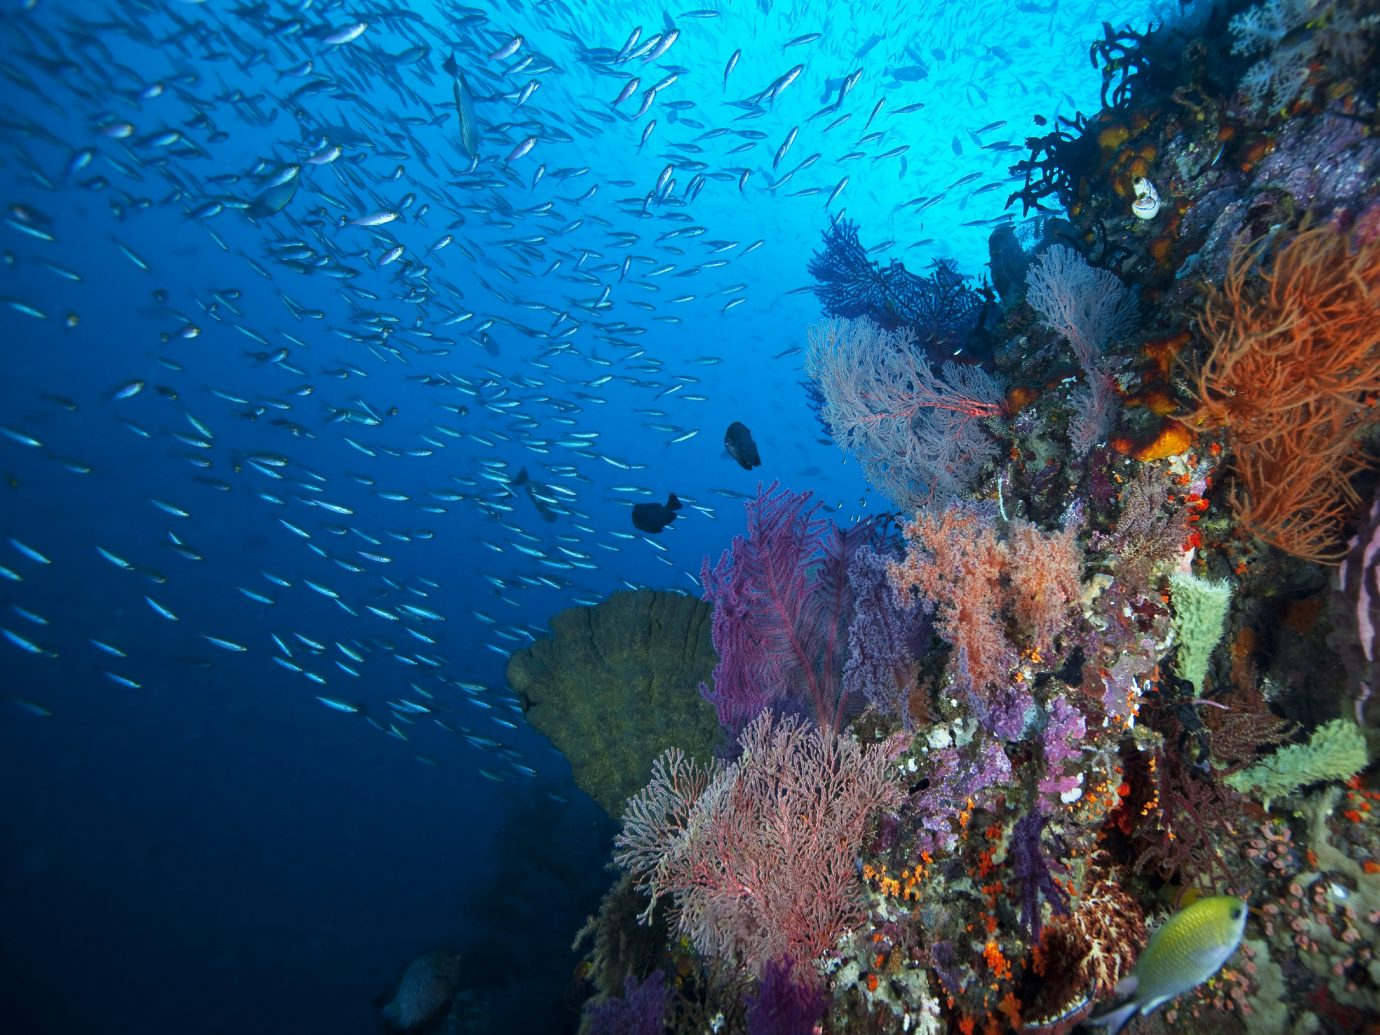 Trip Ideas habitat coral reef reef marine biology underwater coral coral reef fish natural environment biology Ocean Sea diving Scuba Diving water sport underwater diving fish surrounded